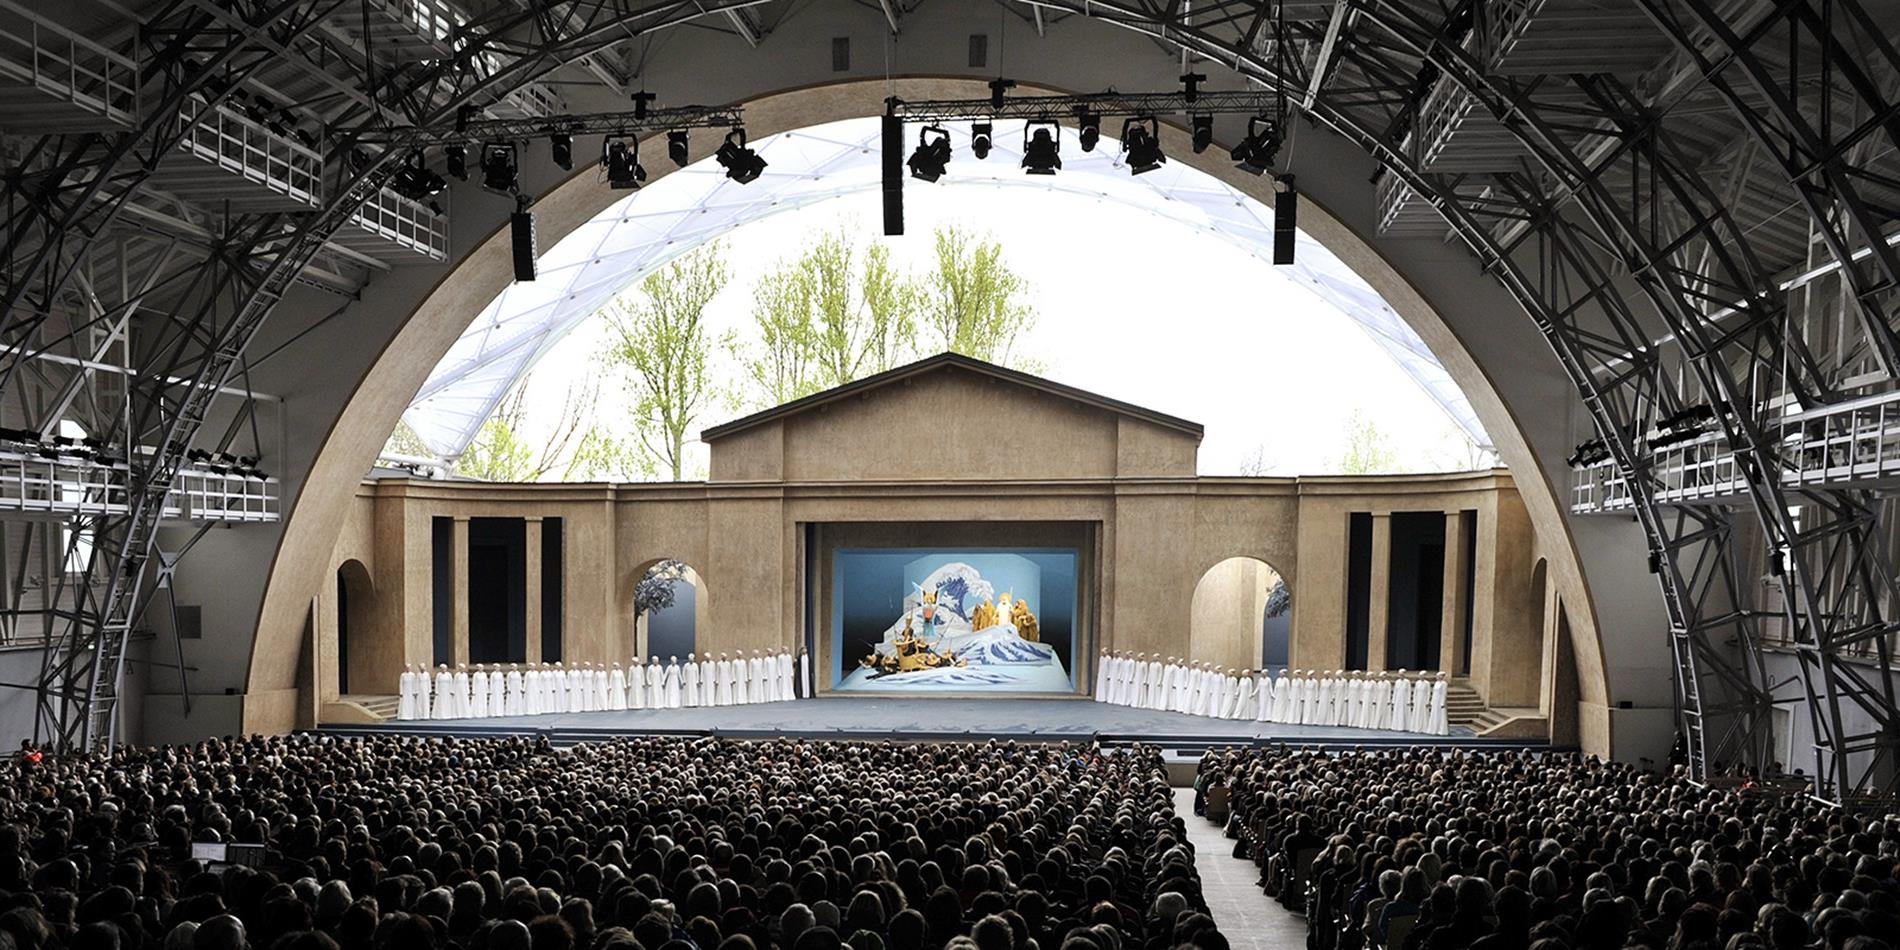 hc-eu-germany-oberammergau-passion-play-theatre-12-5.jpg